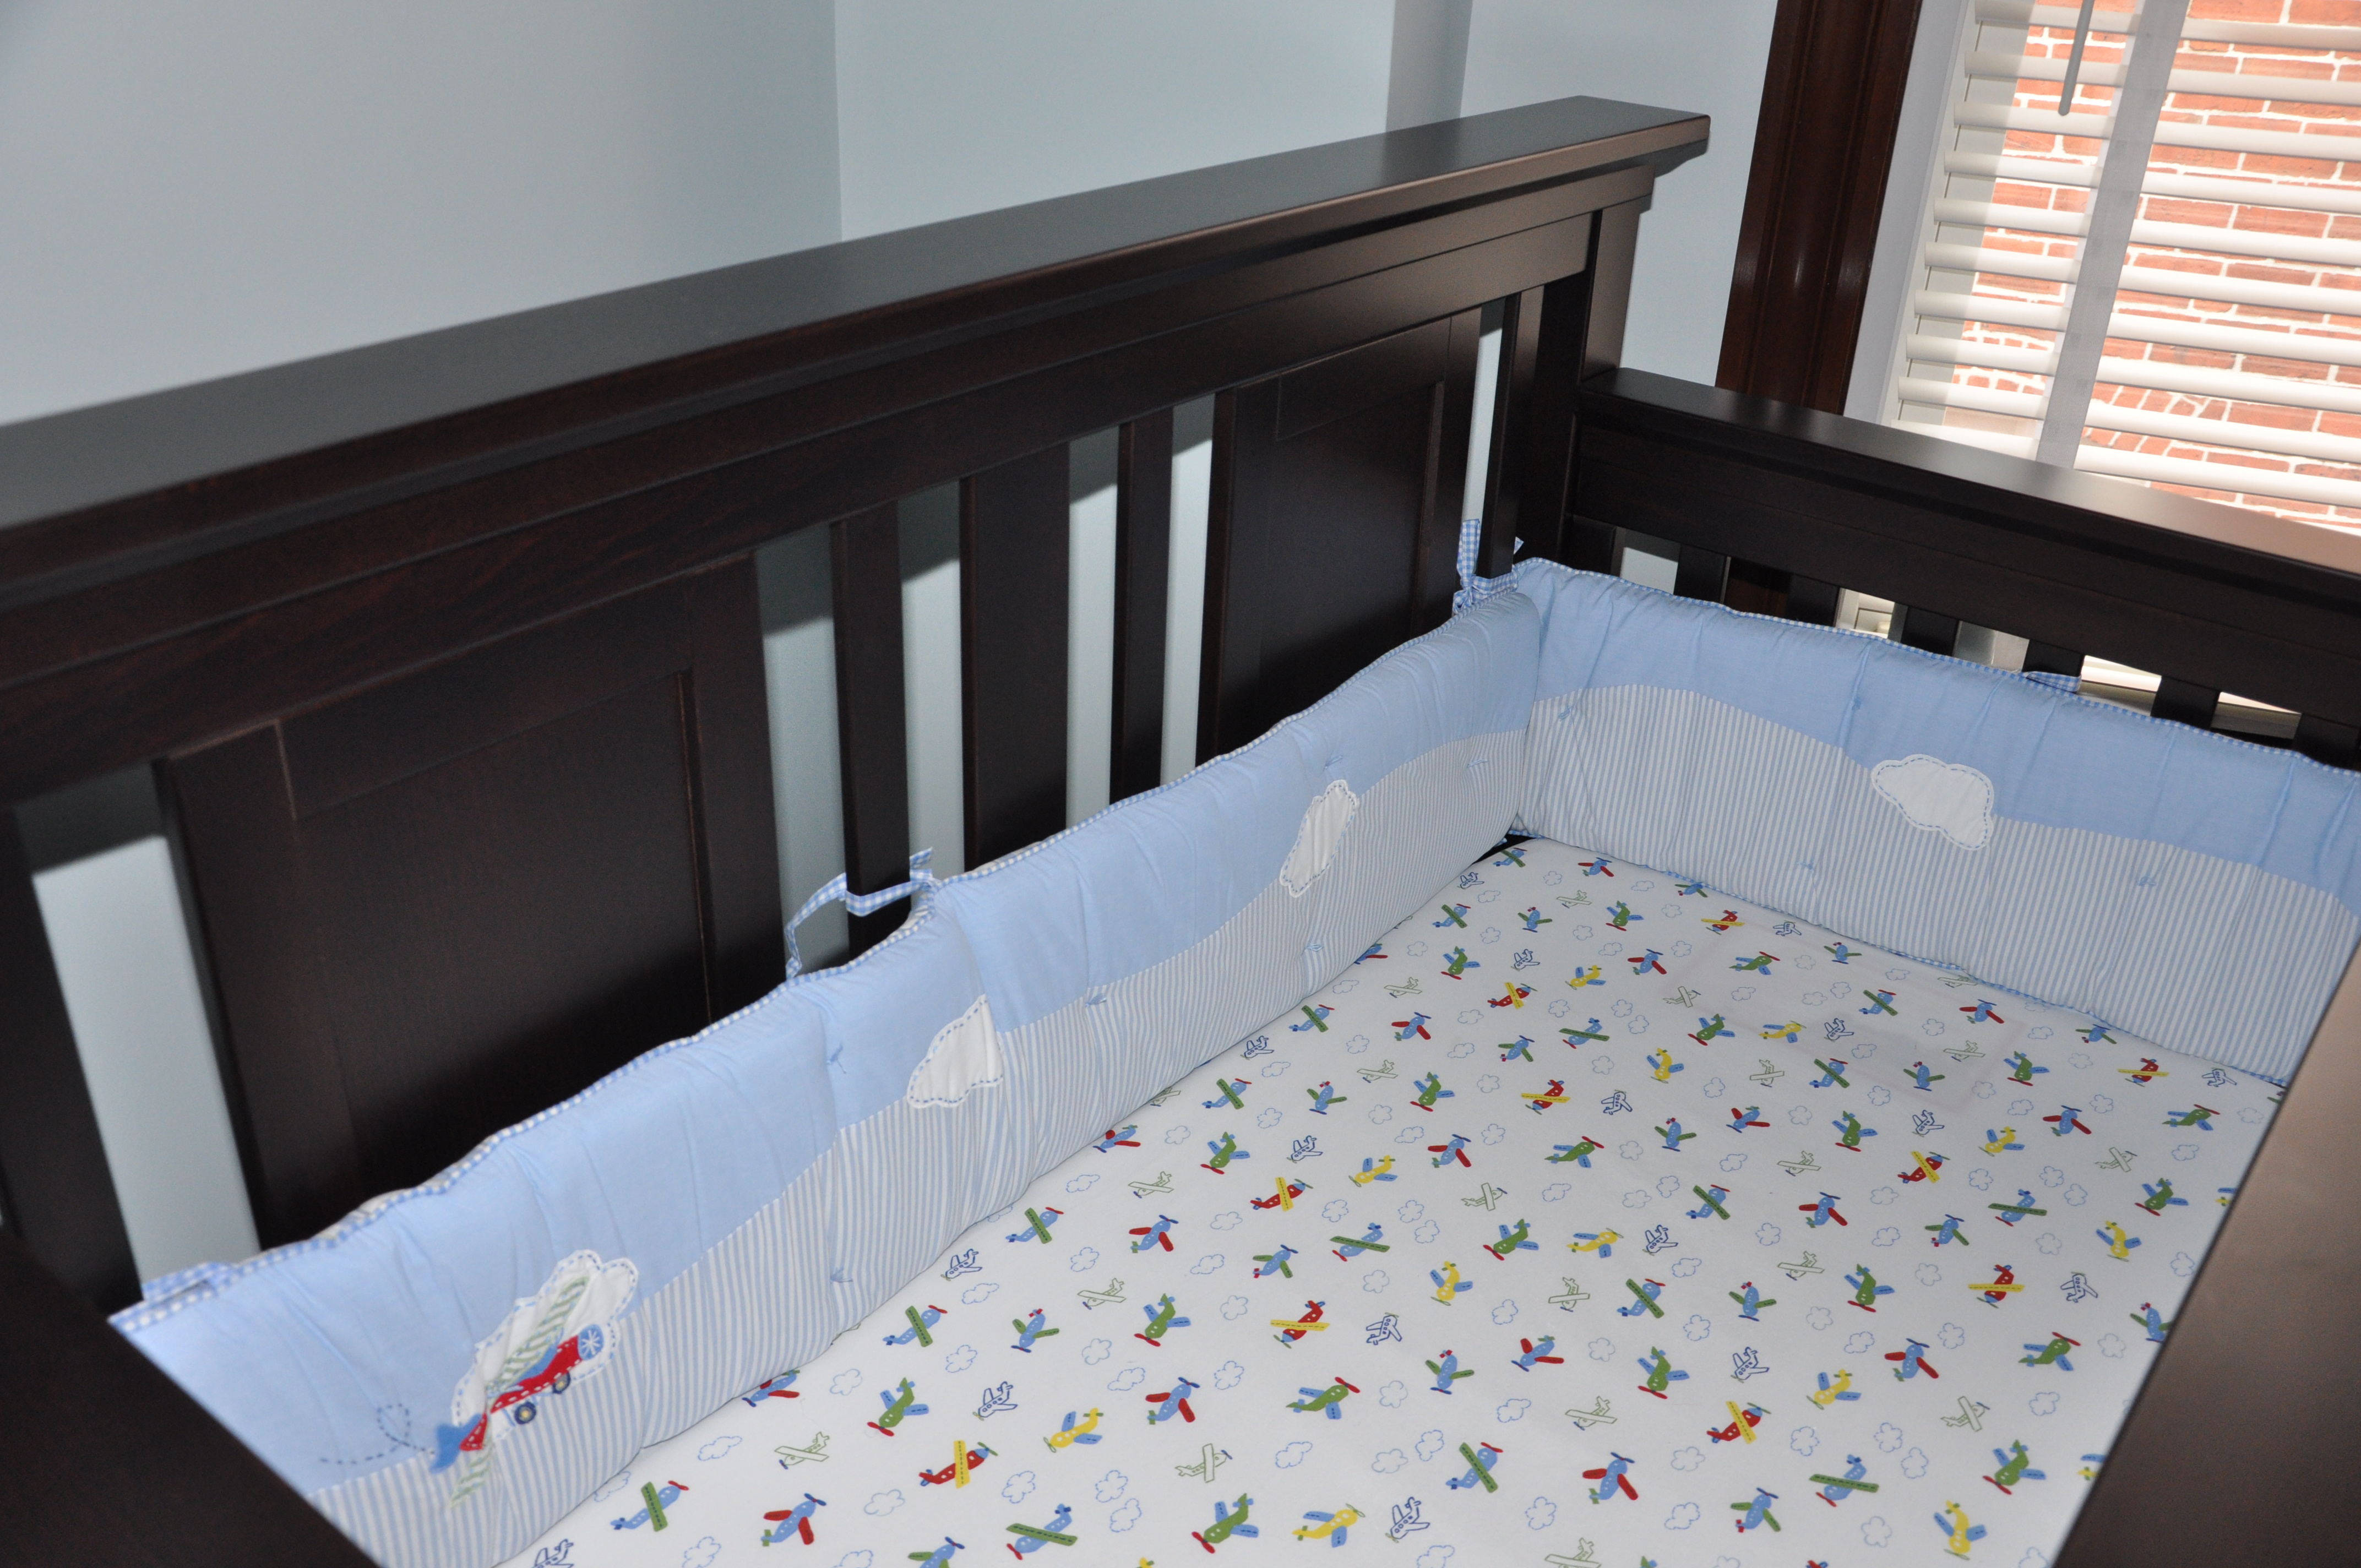 Baby bed for airplane - We